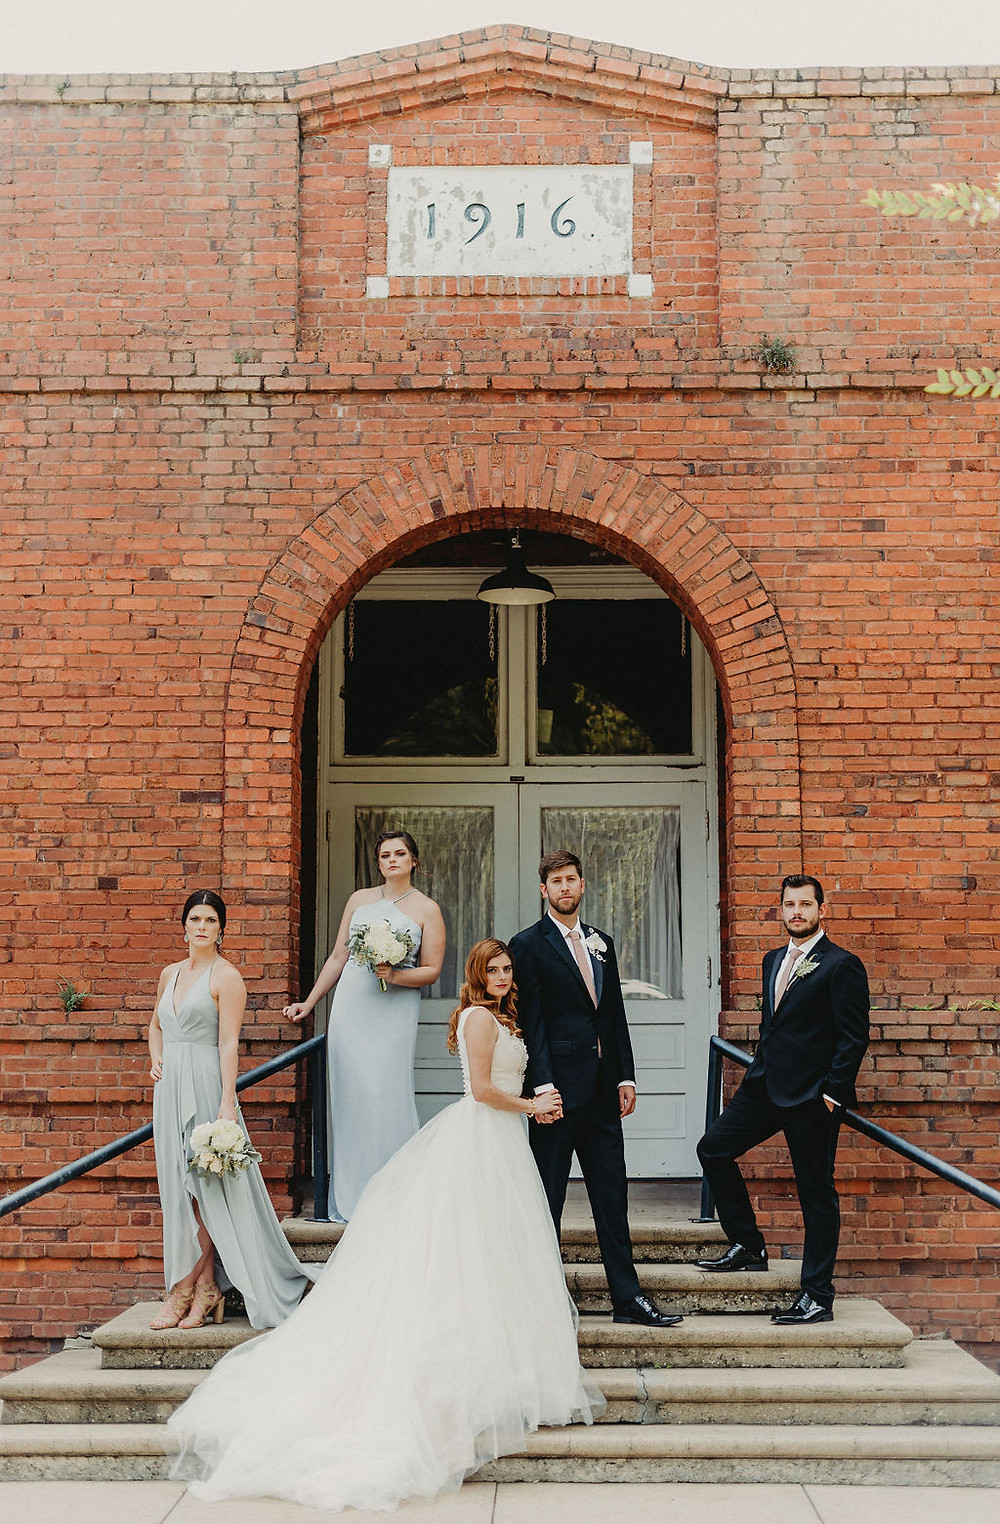 Bride, groom and wedding party in front of red brick building